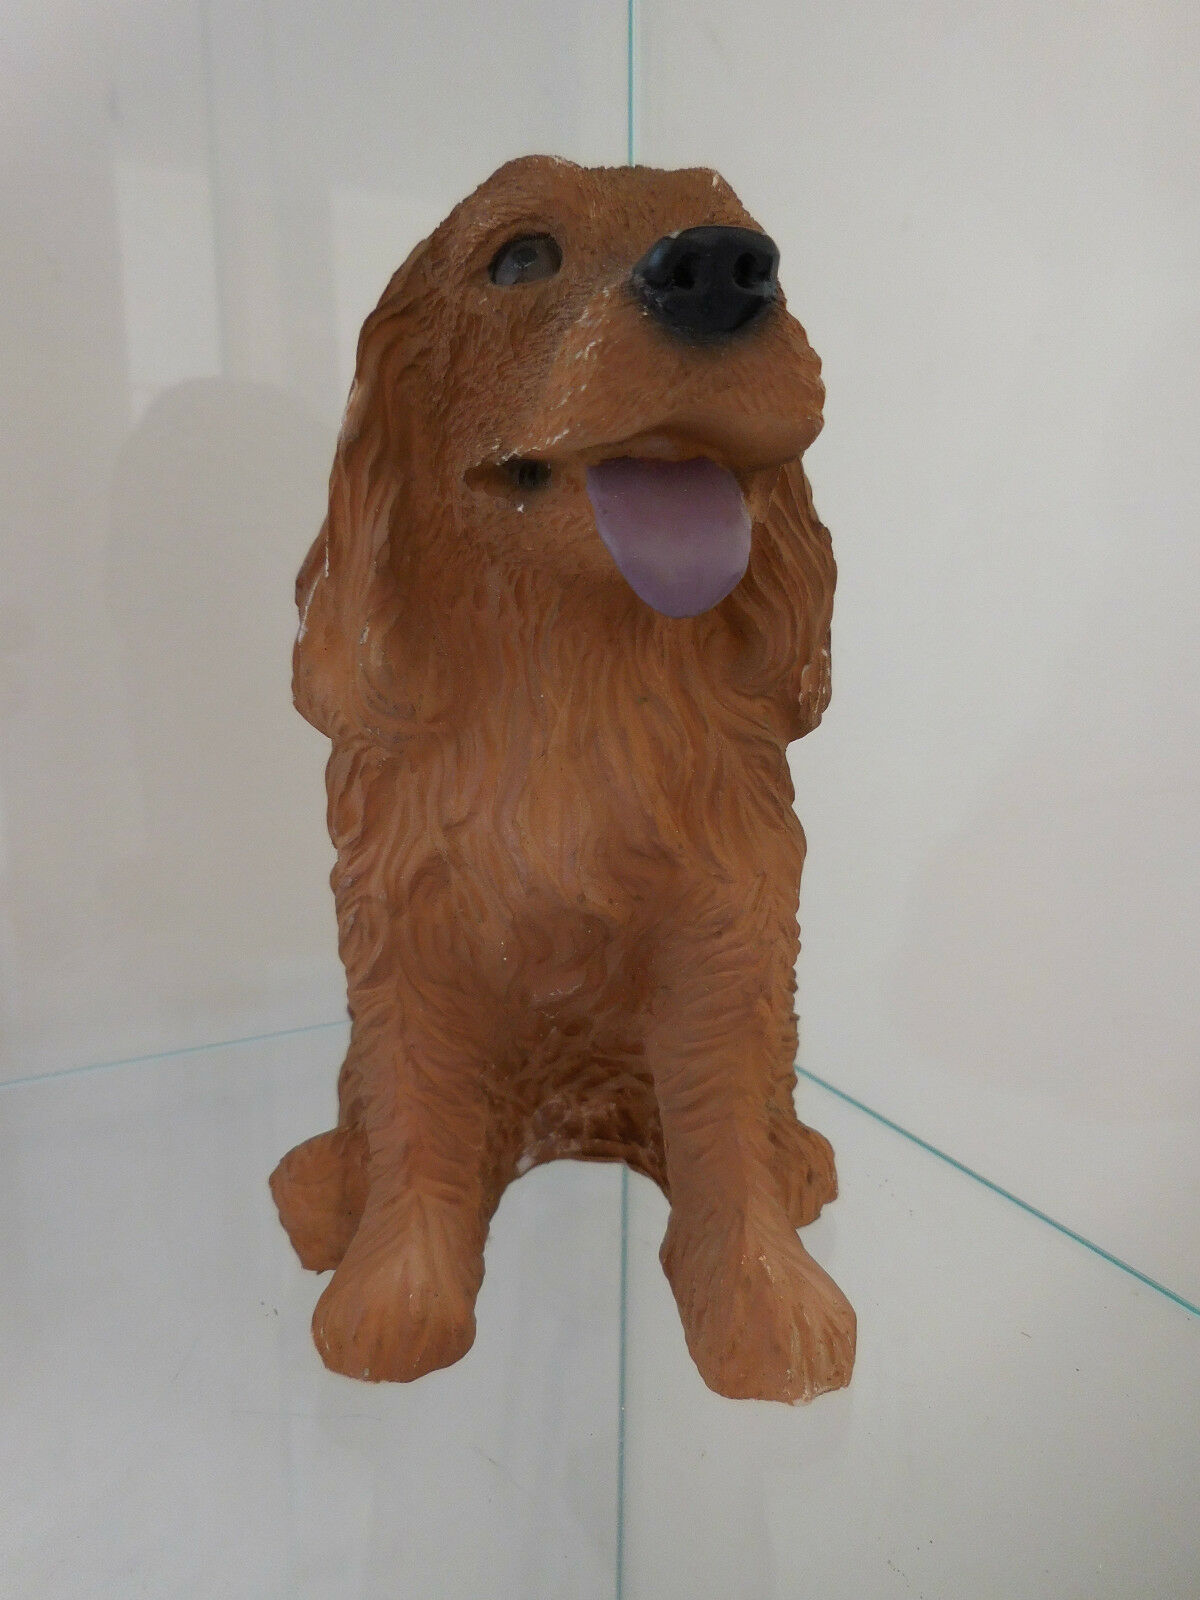 Dog figurine resin curiosity by pn